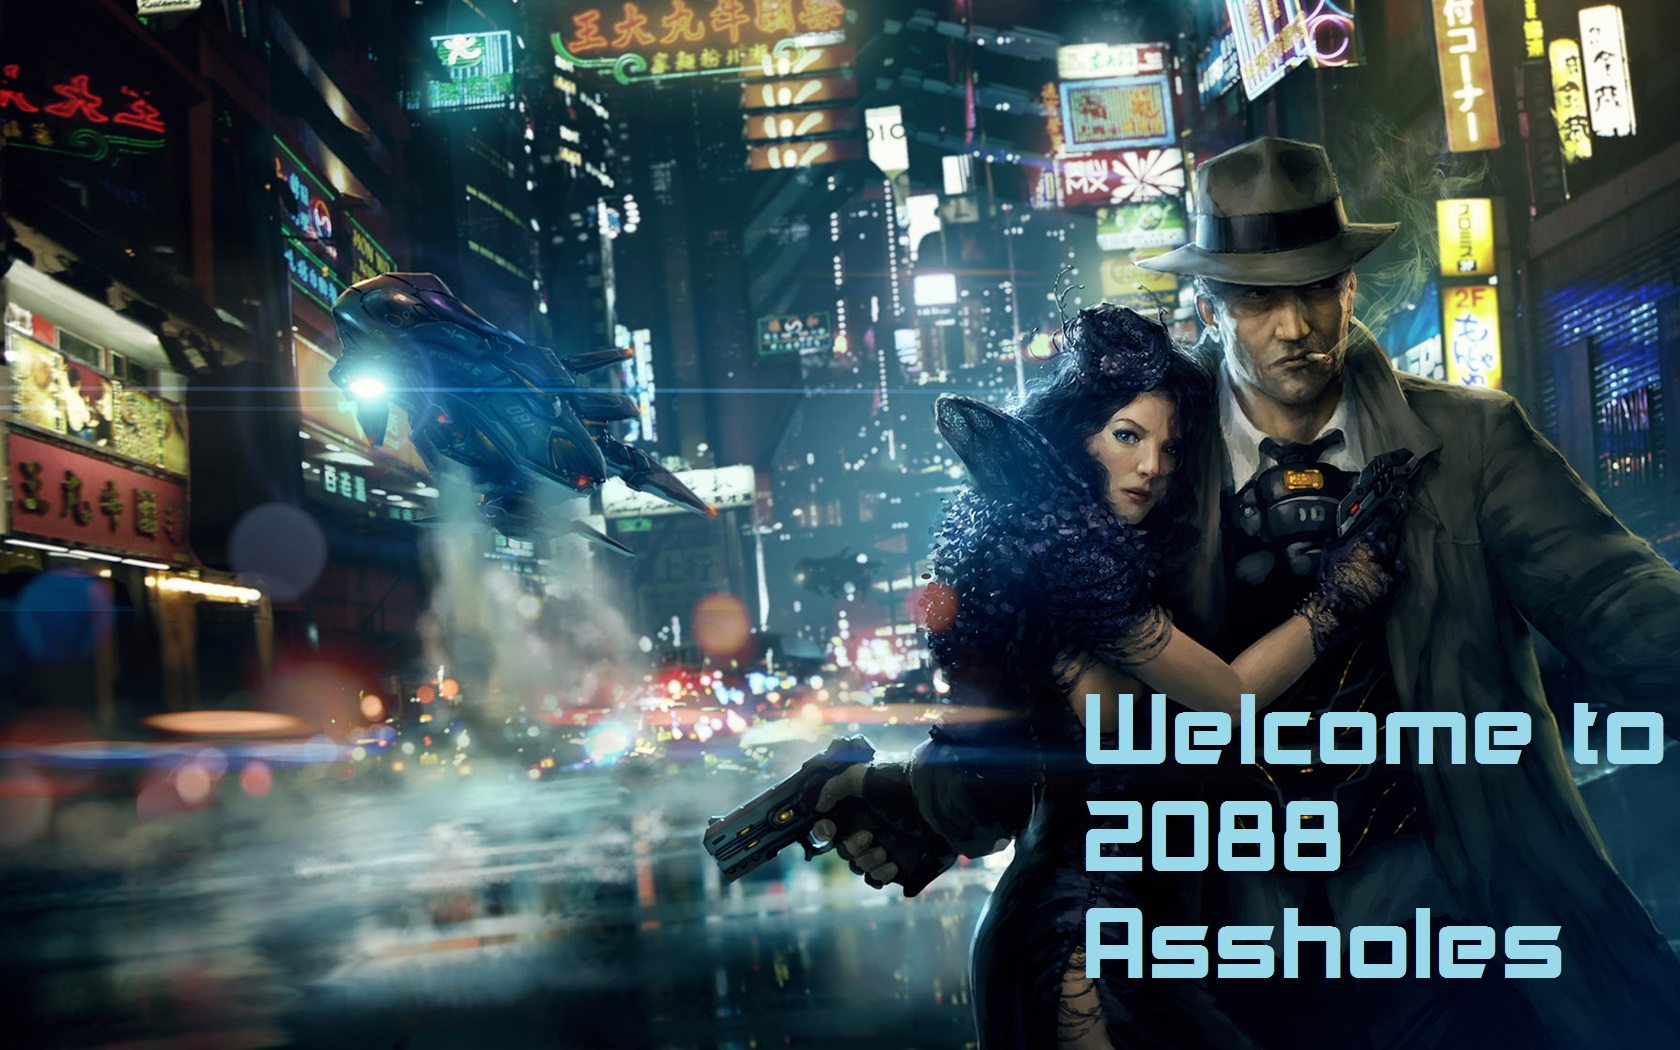 2088welcome